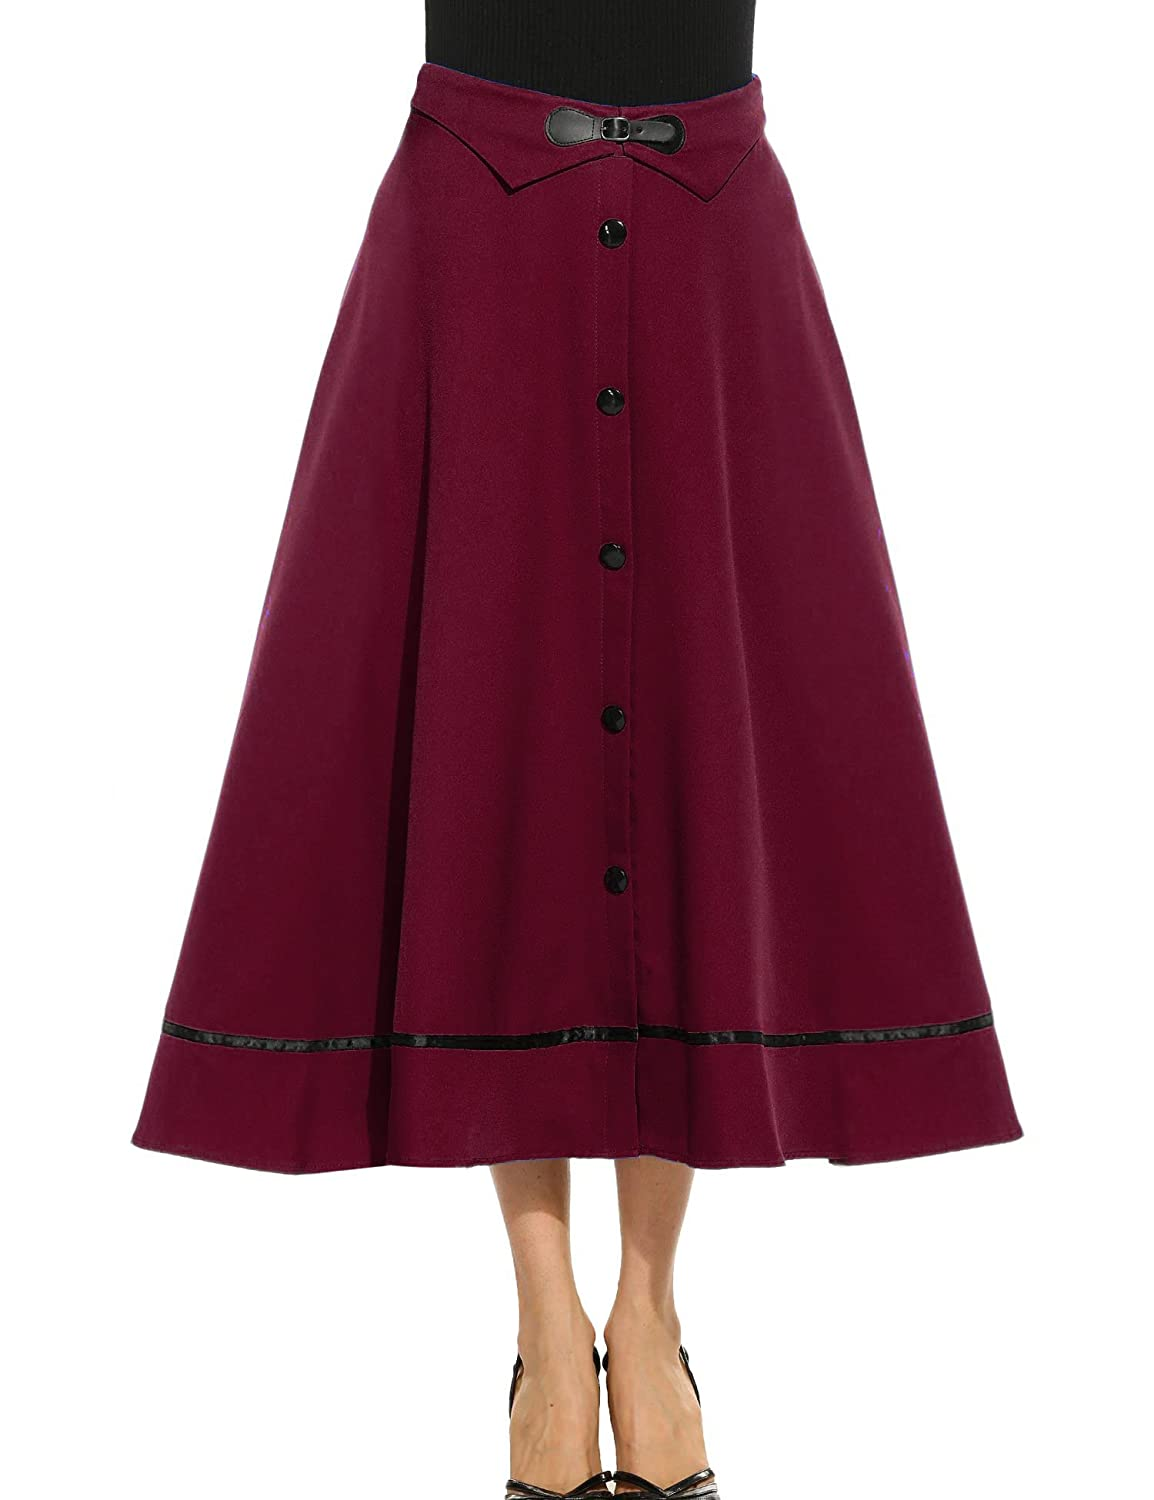 Victorian Skirts | Bustle, Walking, Edwardian Skirts ANGVNS Womens Vintage High Waist Button Down Pleated Swing Skirt $18.99 AT vintagedancer.com